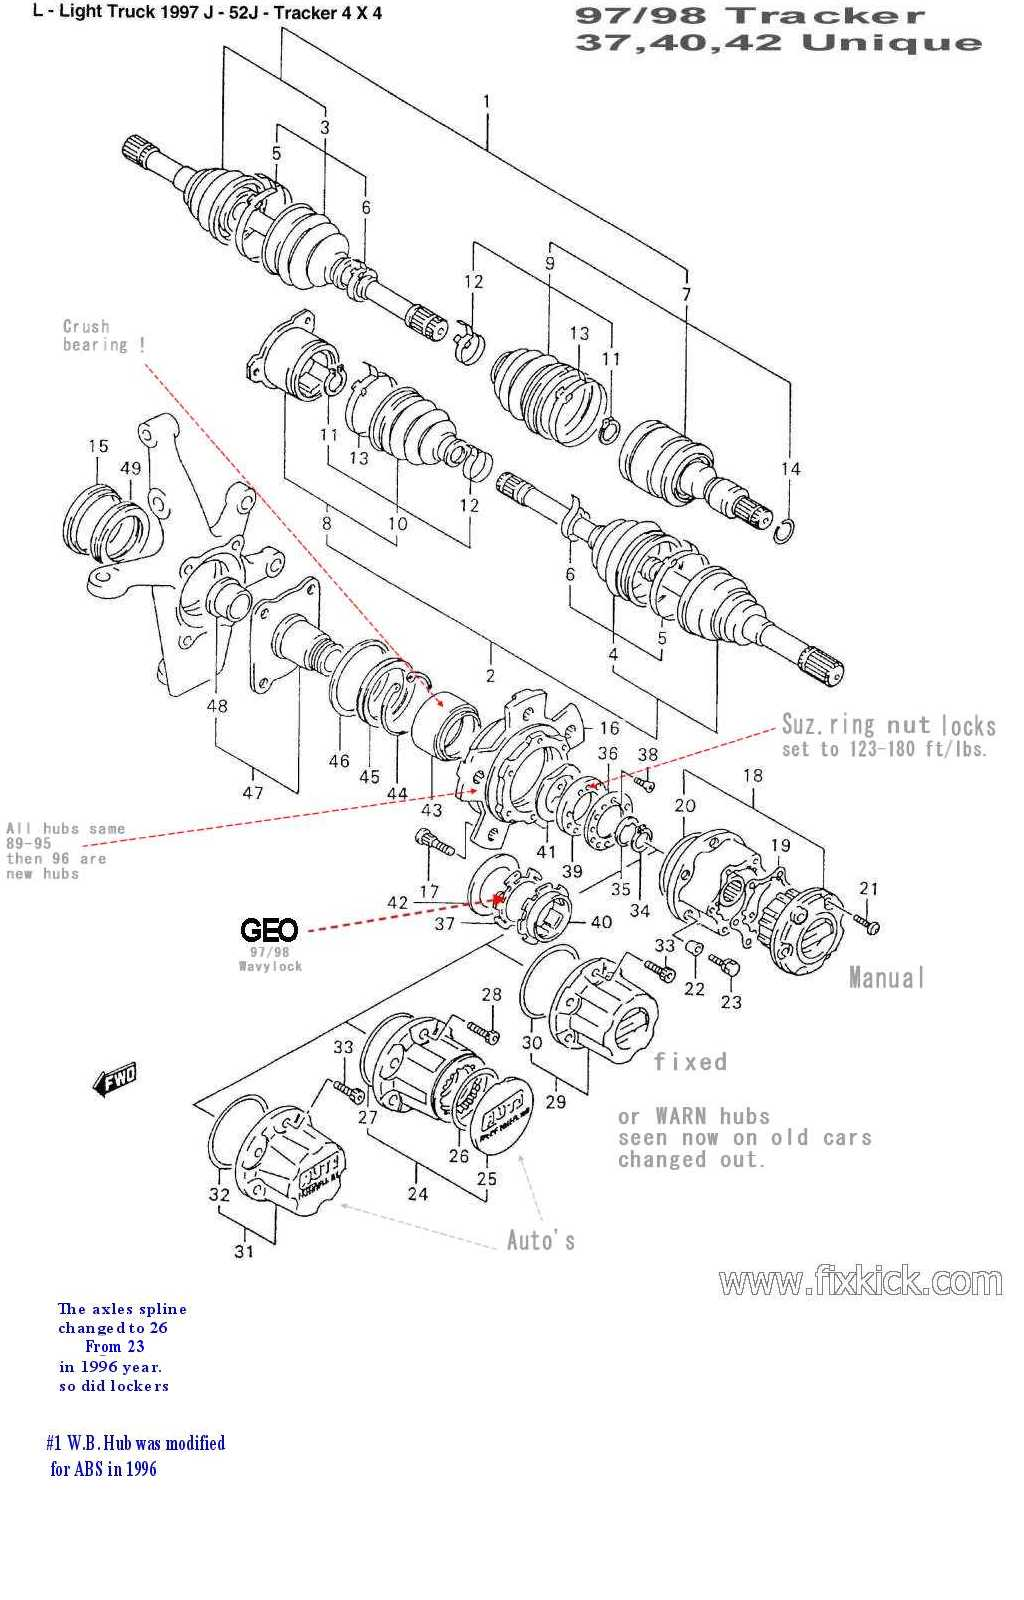 Toyota Highlander 3 0 2002 Specs And Images additionally 5qu2r Honda Accord 1996 Honda Accord 4 Cylinder Door further Wiring And Connectors Locations Of Honda Accord Air Conditioning System 94 07 besides Gmc Sierra Mk1 1996 1998 Fuse Box Diagram also Hubs. on 96 accord main relay location